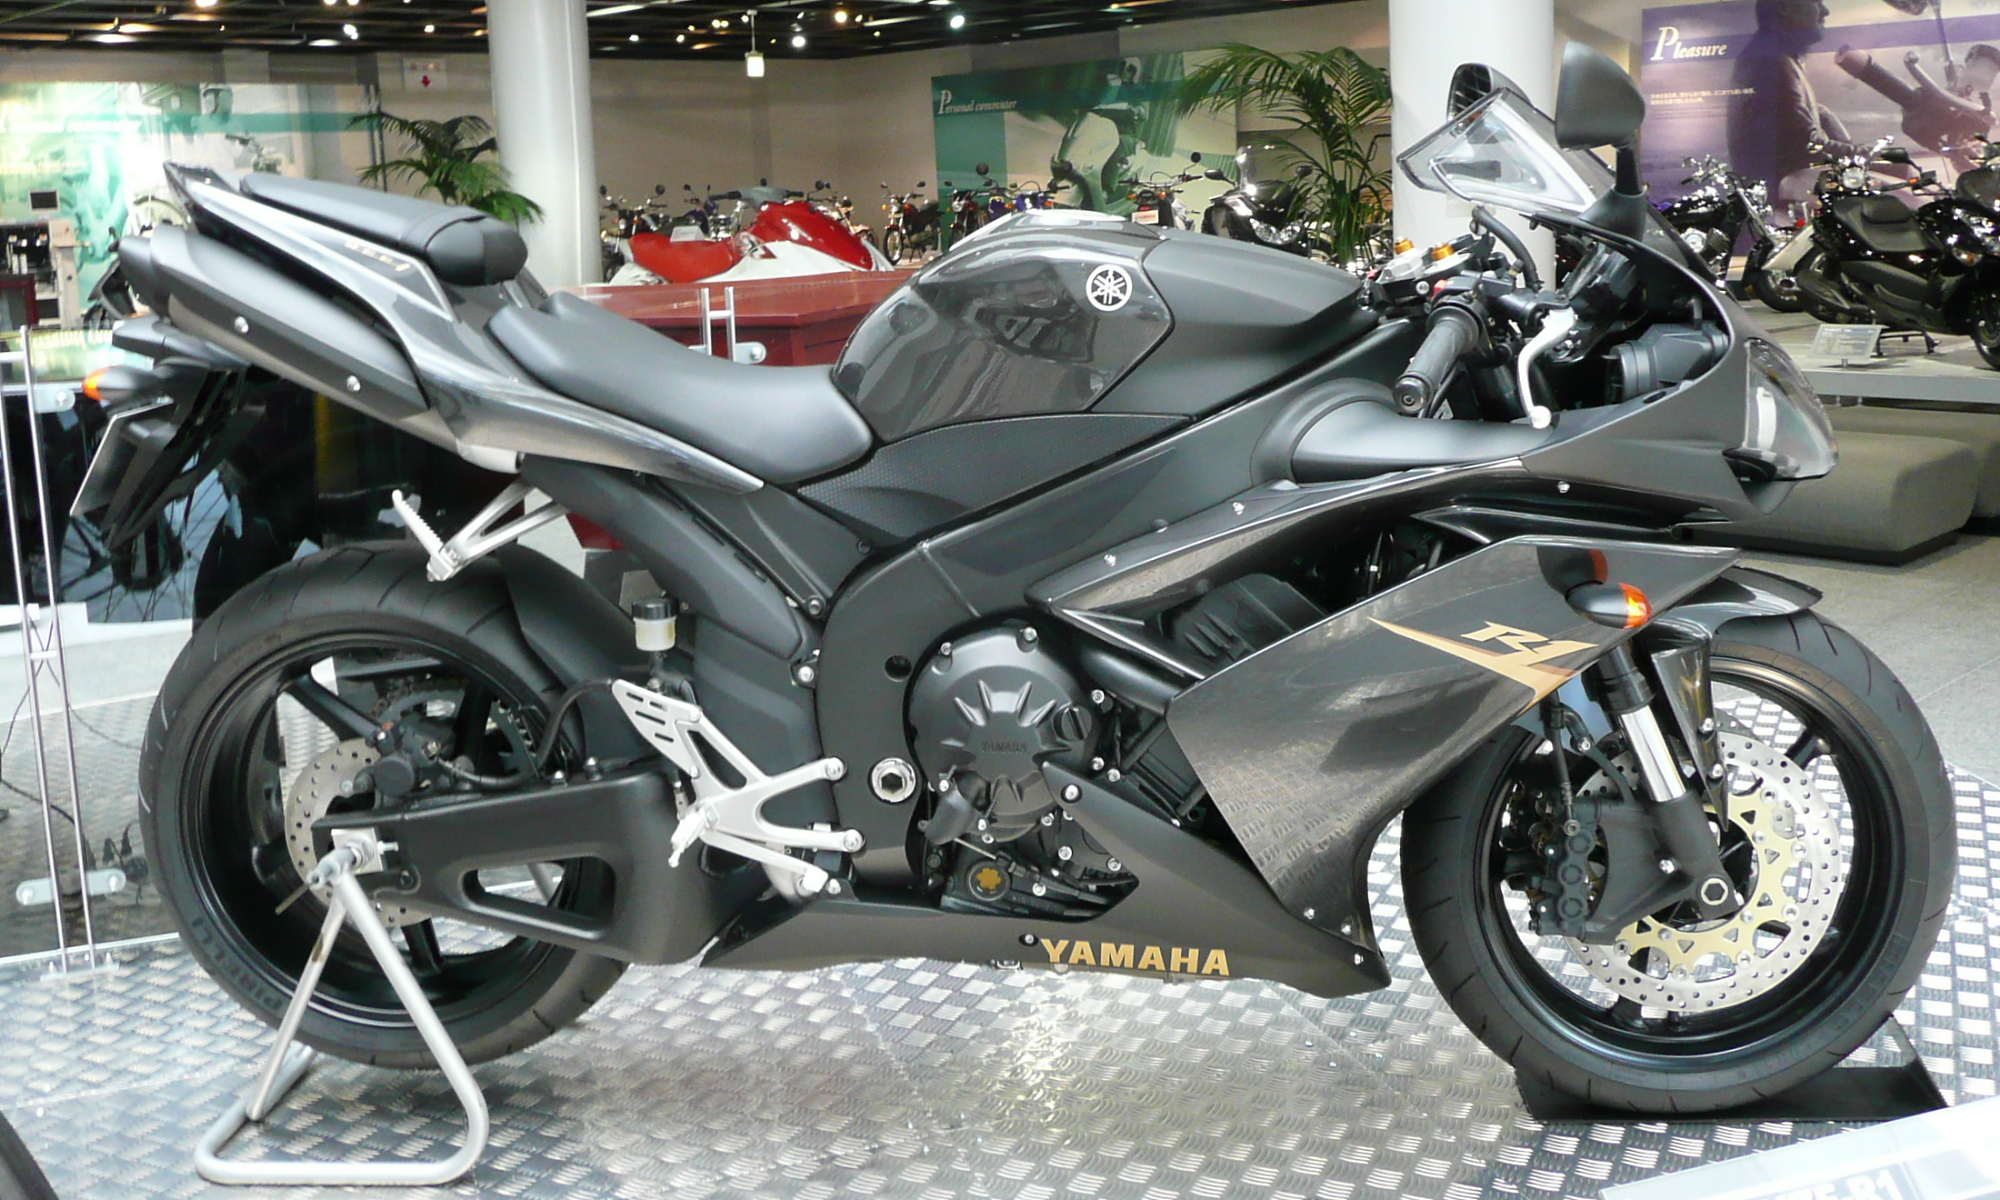 File:YAMAHA YZF-R1 2008 right side.jpg - Wikimedia Commons